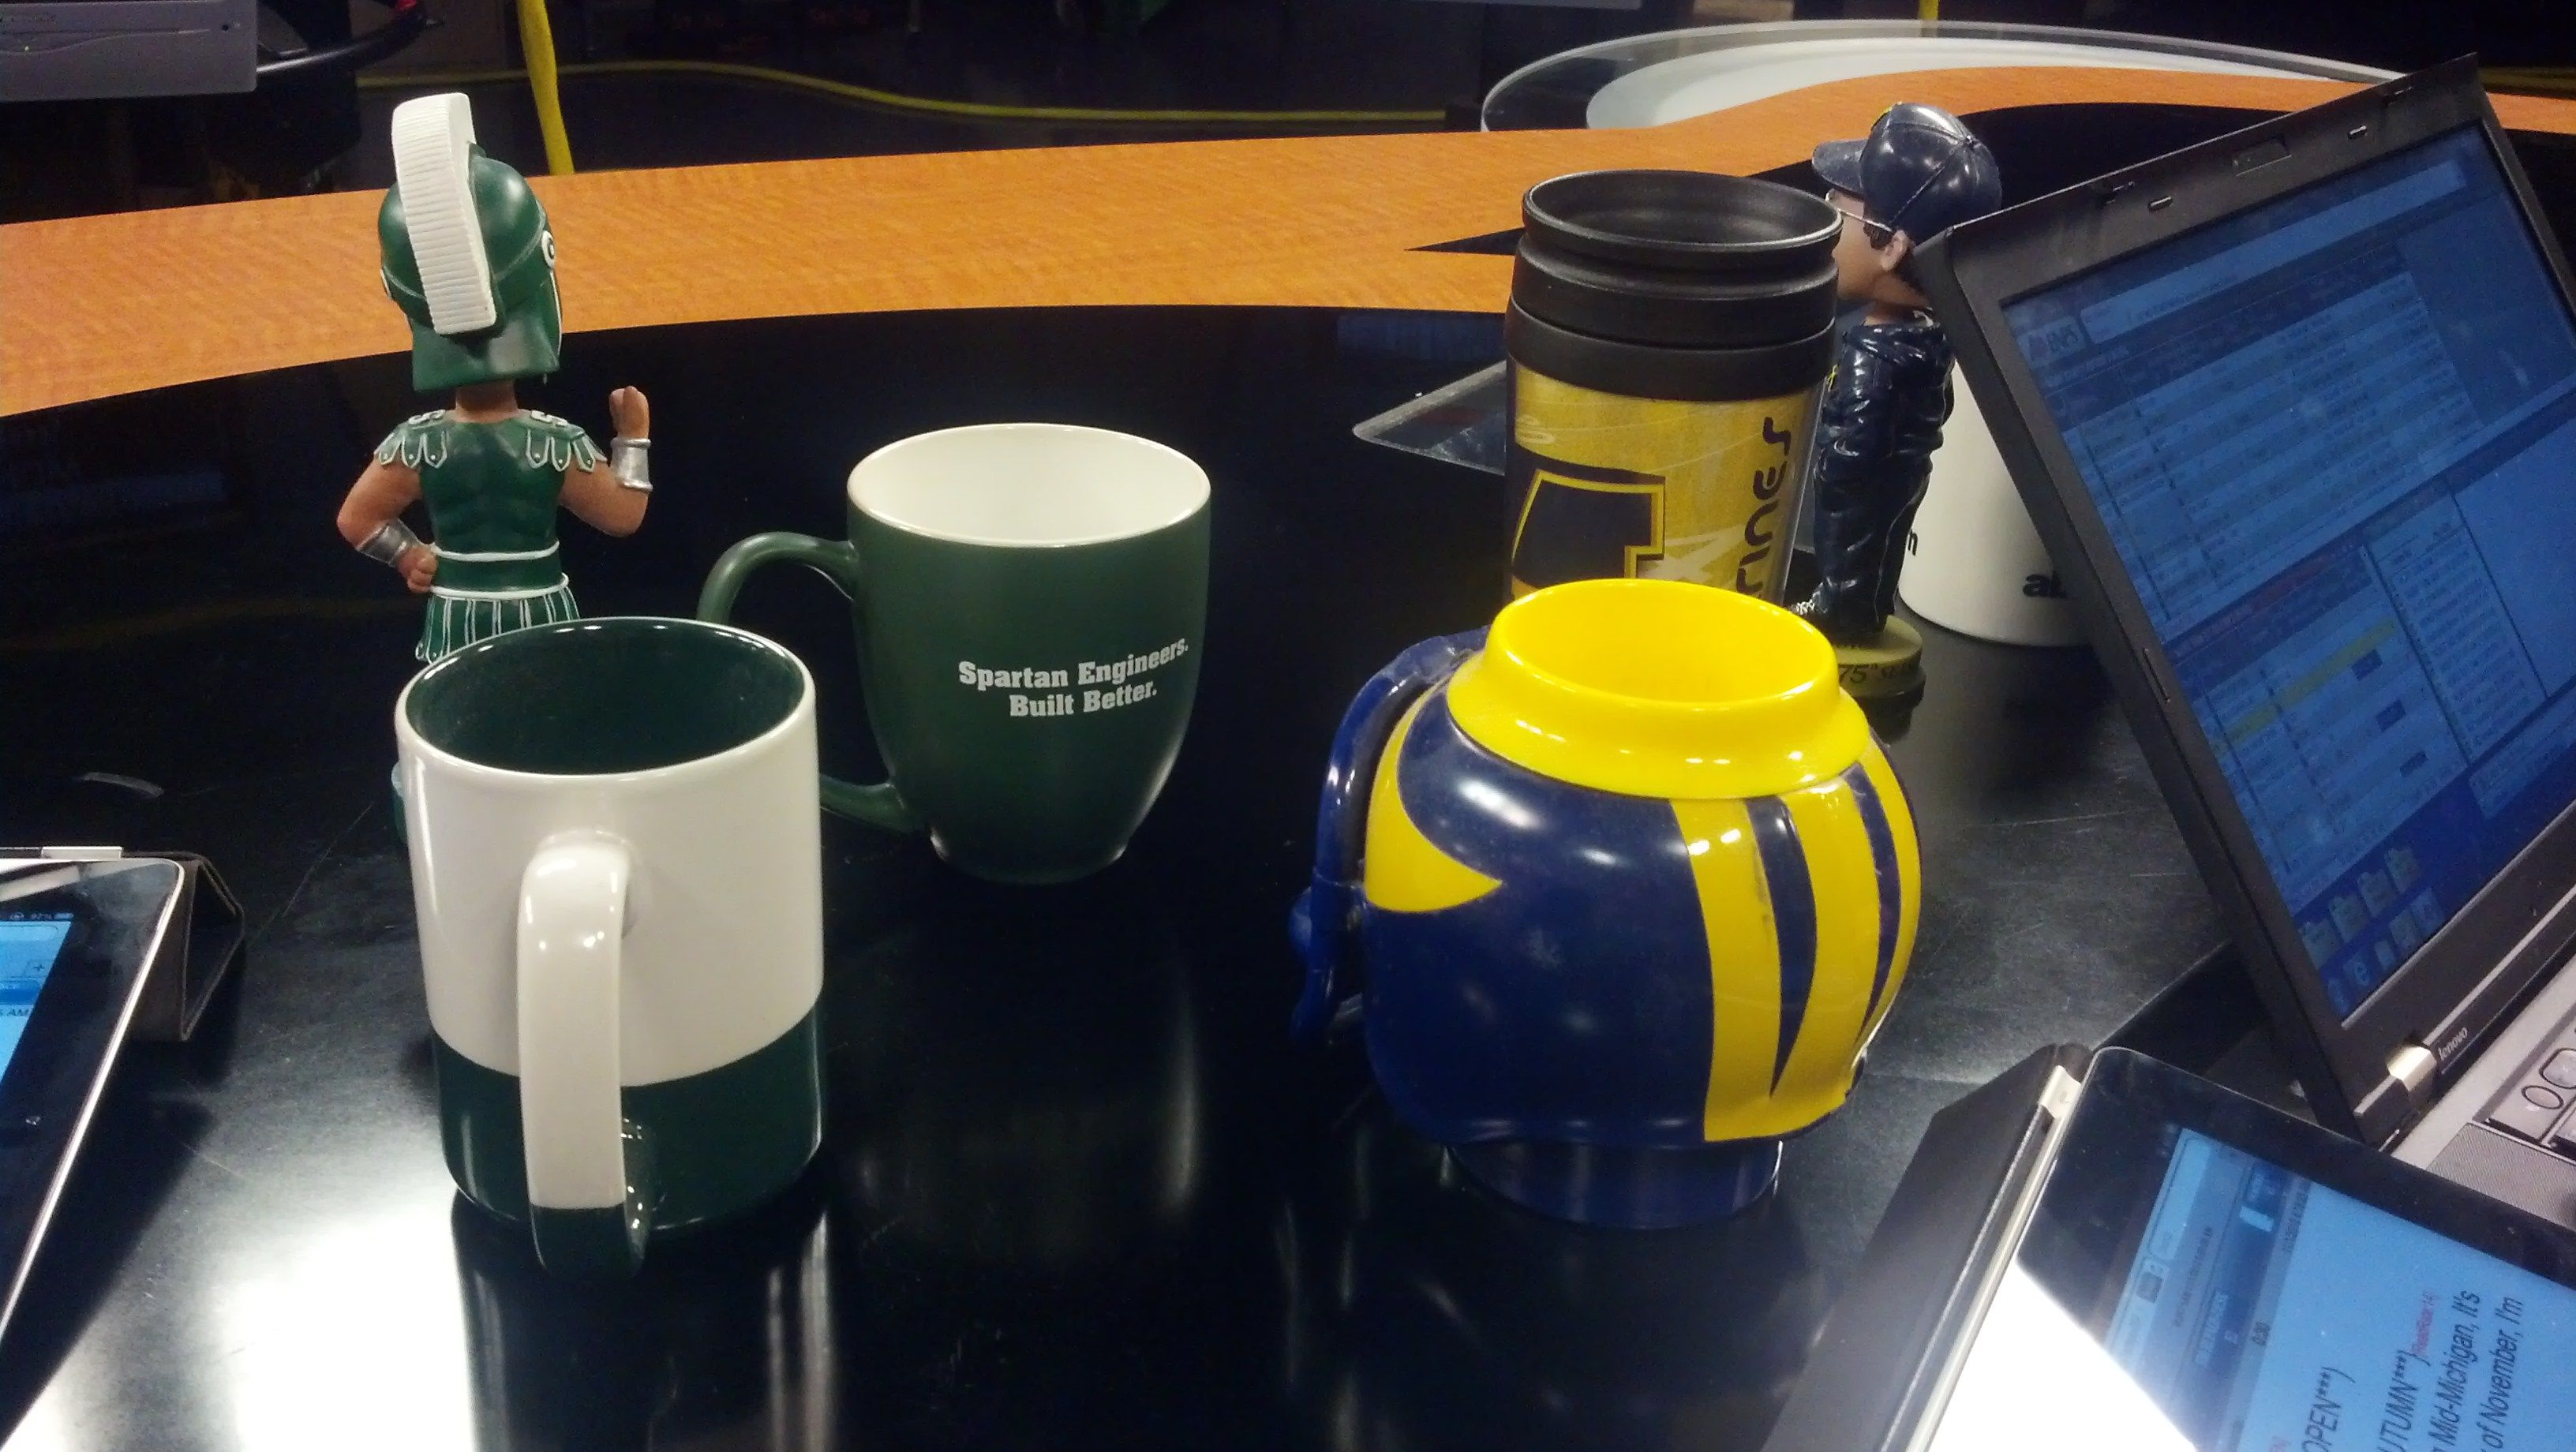 the anchor desk has become a battlefield for the backyard brawl